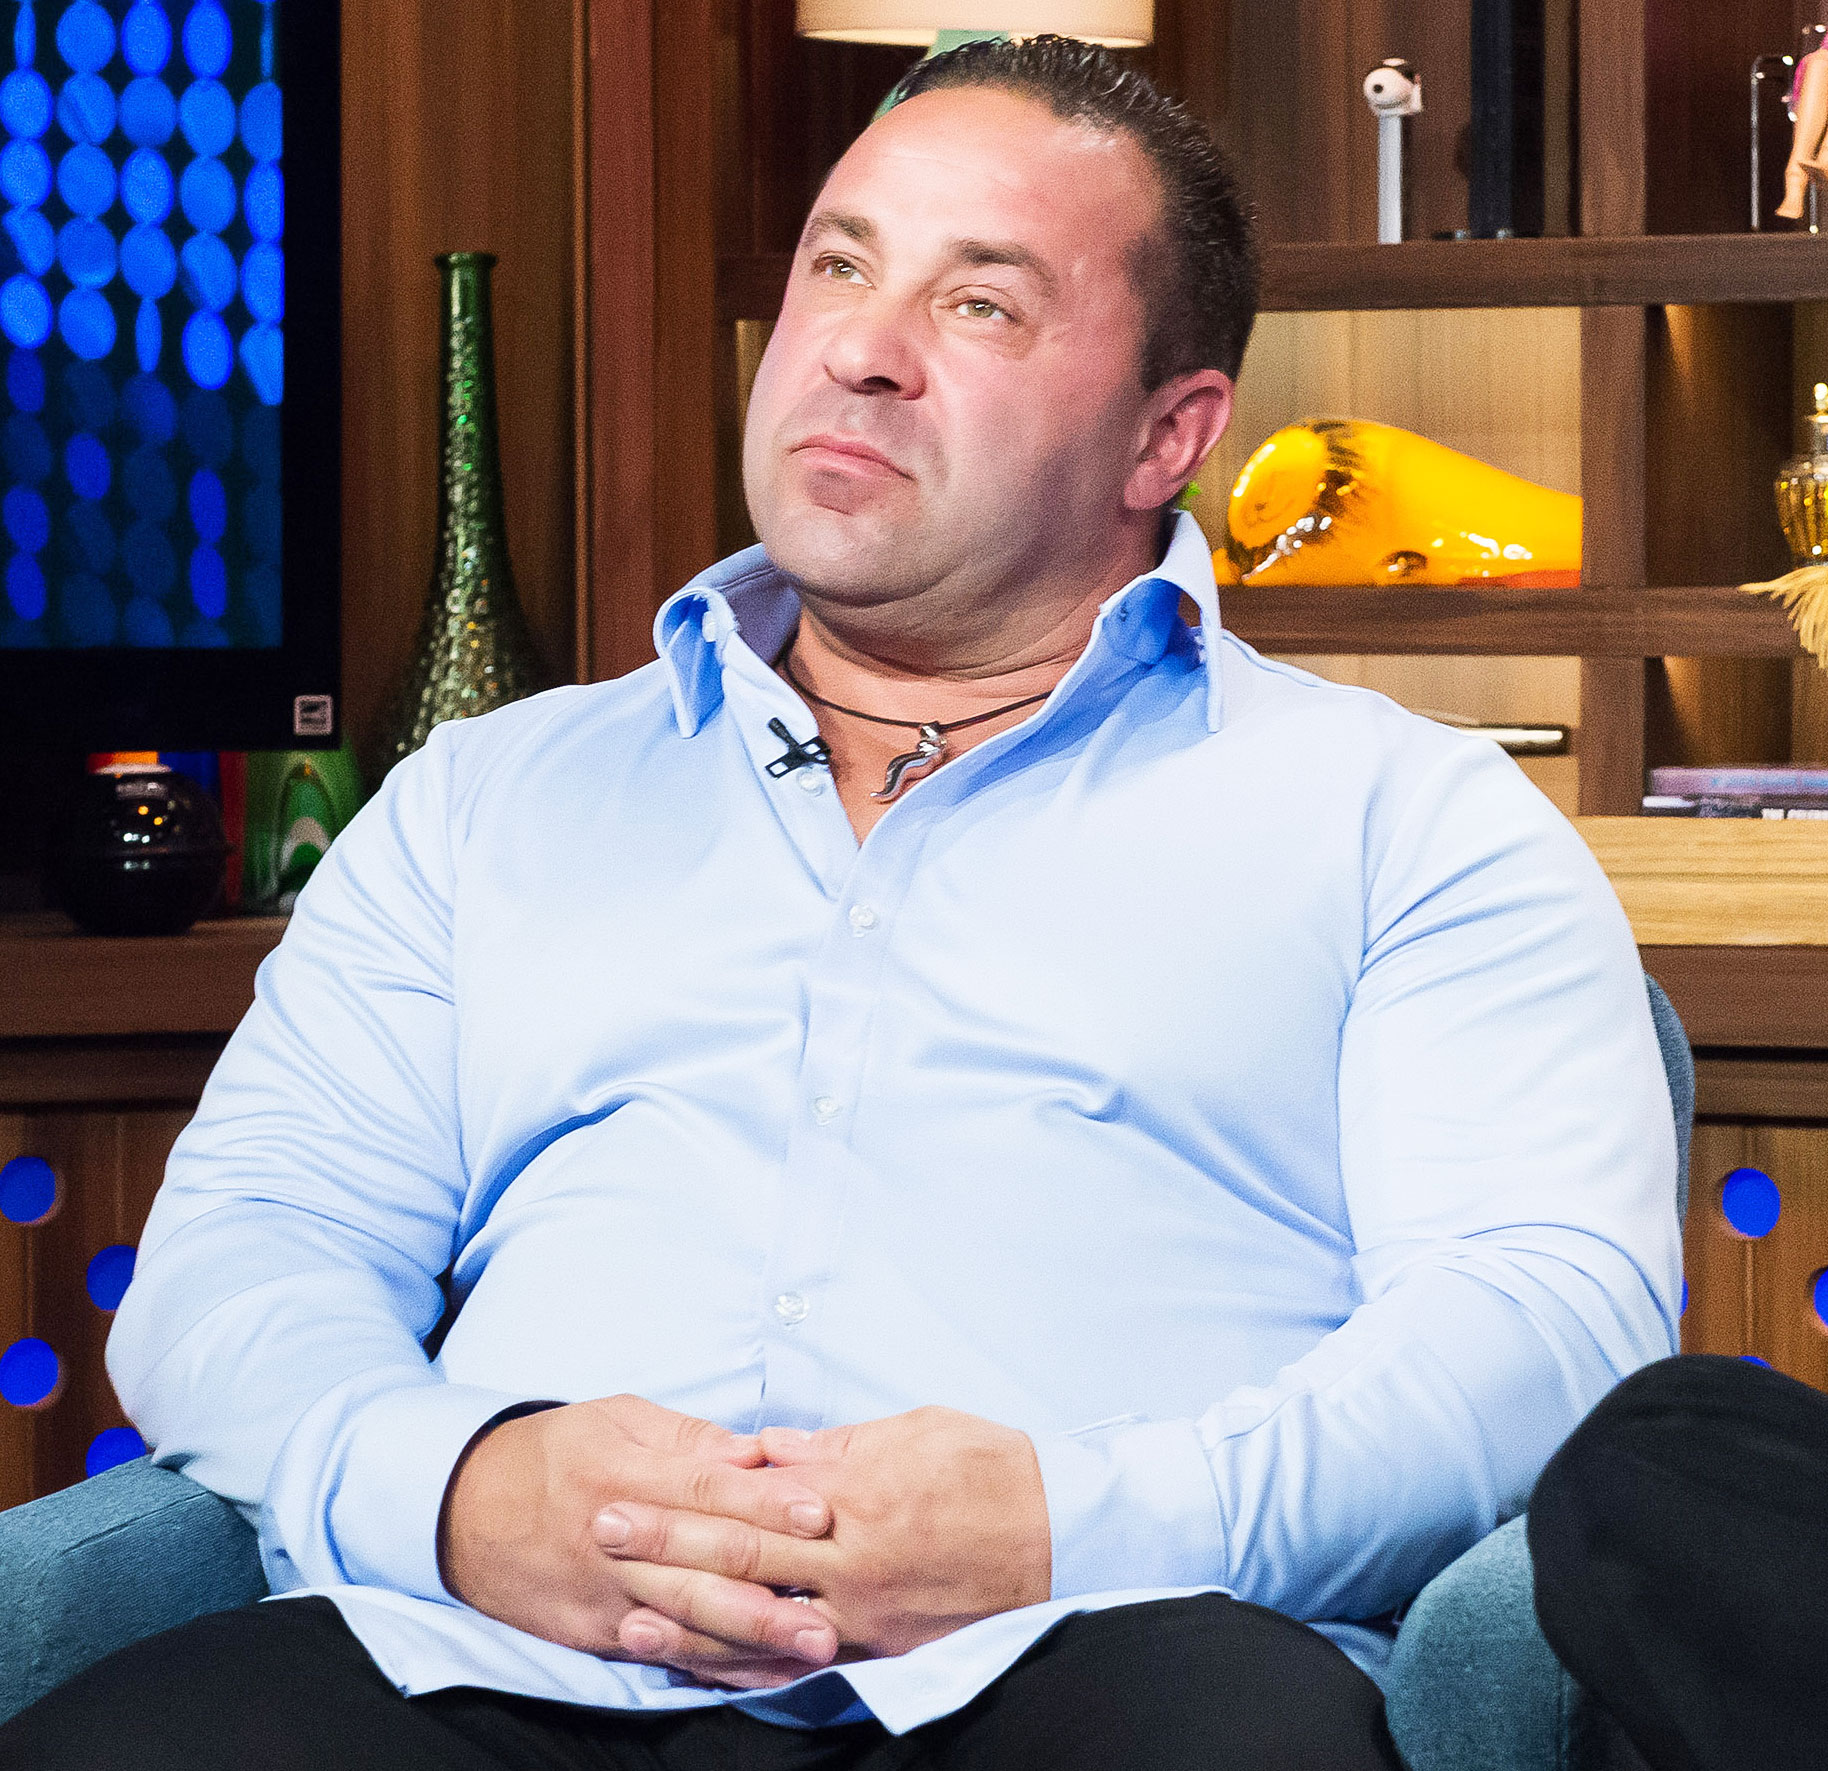 Joe Giudice Deportation Disappointed Fight